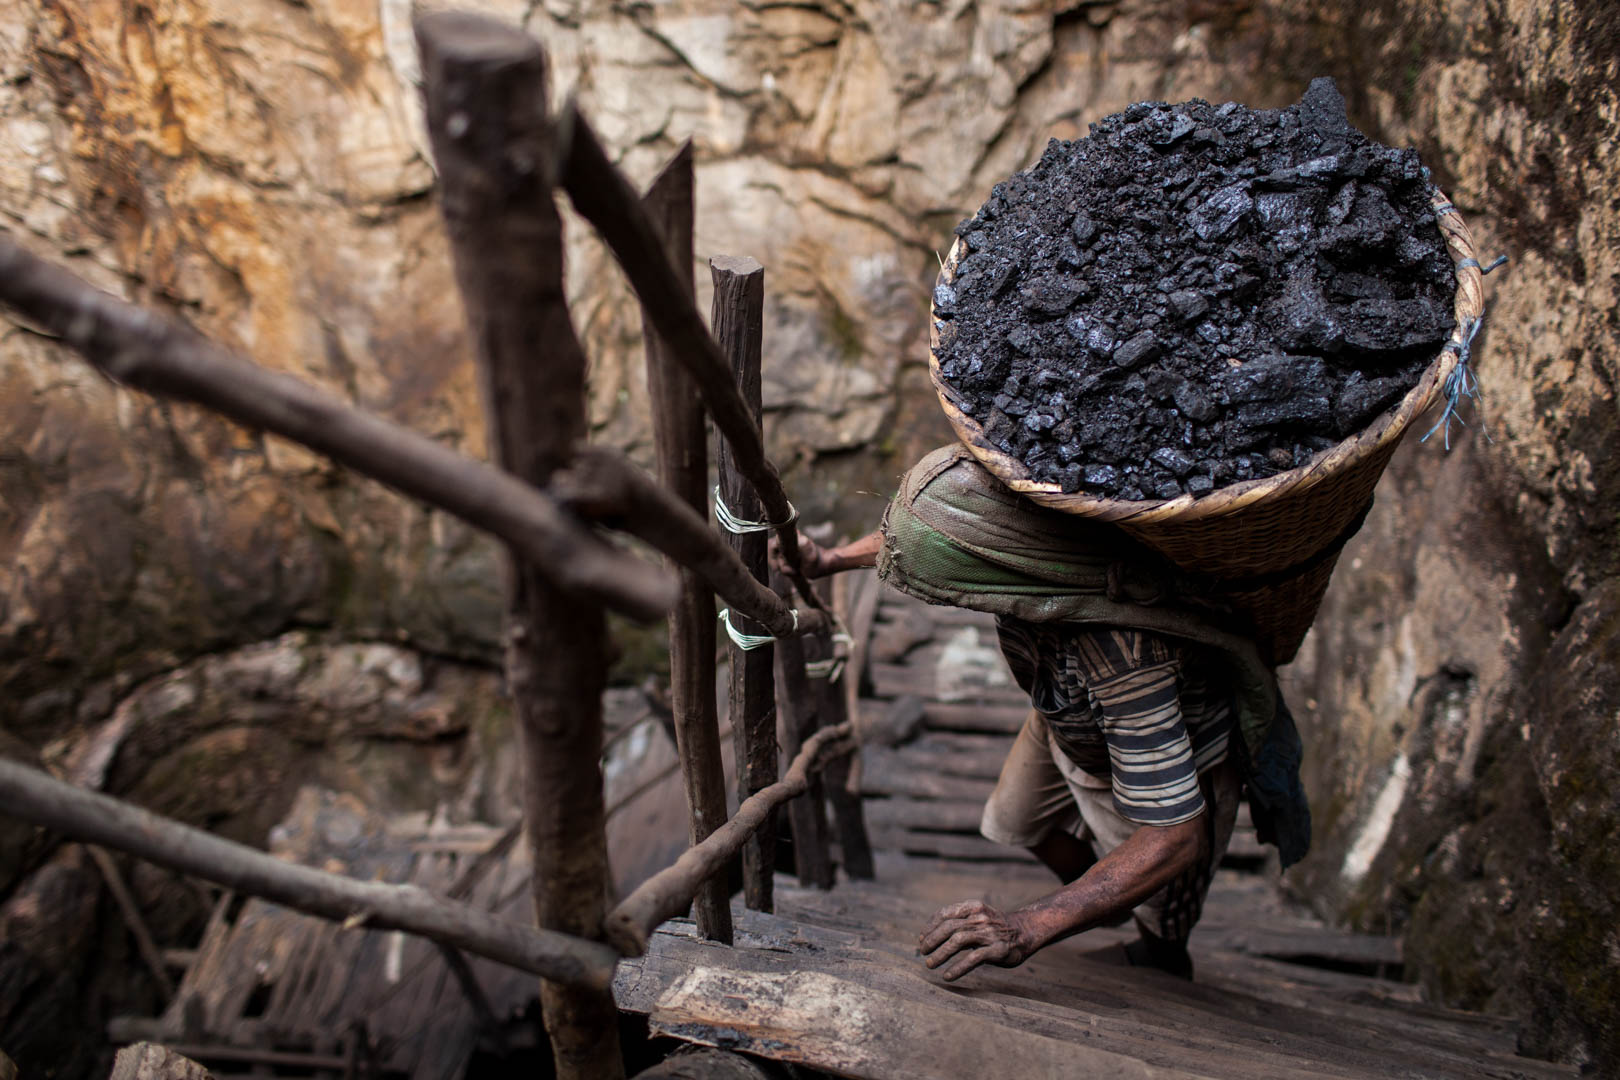 In the north-eastern state of Meghalaya, a different kind of illegal coal-mining has flourished: Because of total absence of police or authorities, business men set up underground mines in order to exploit the ground for coal. This man is carrying around 70 kilos or coal around 30 meters to the surface.